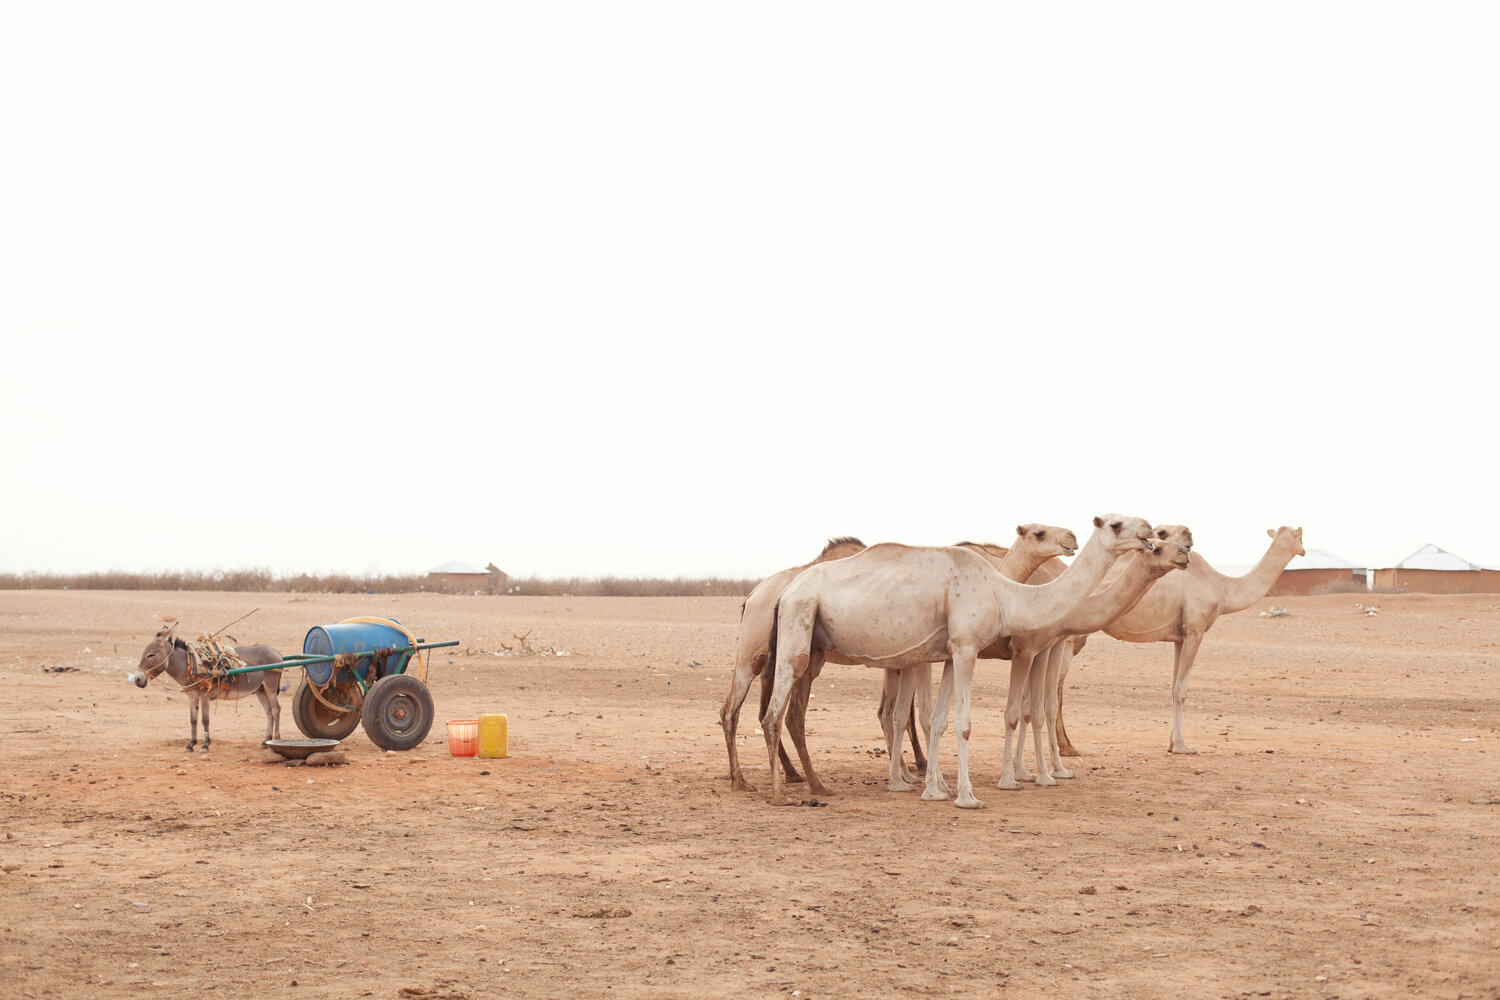 A donkey carting water and a herd of camels in Gode, Ethiopia.